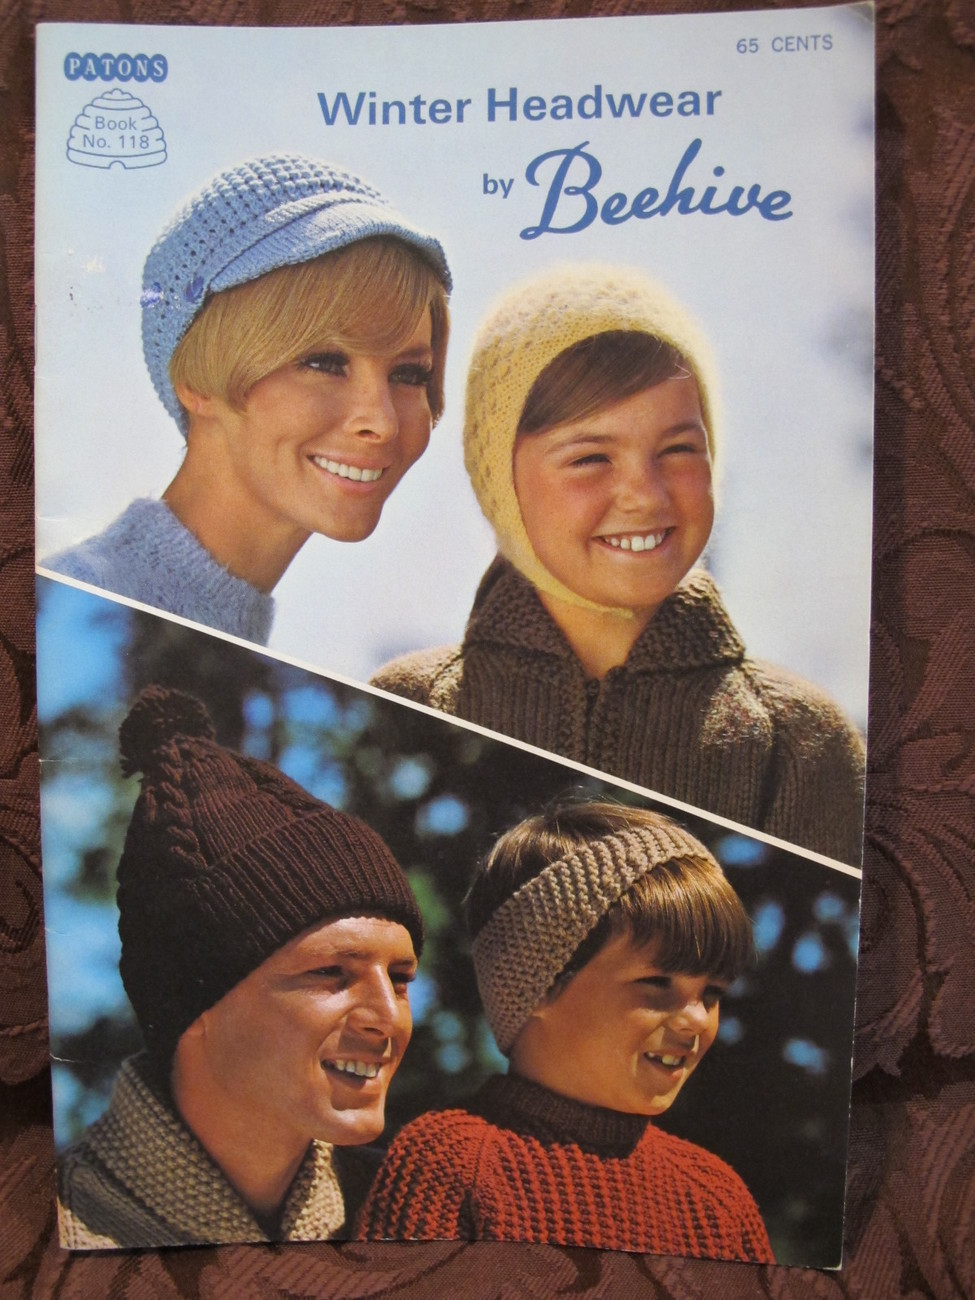 Vintage Patons Knitting Crochet Crocheting Patterns Hats Caps Toques etc FAMILY